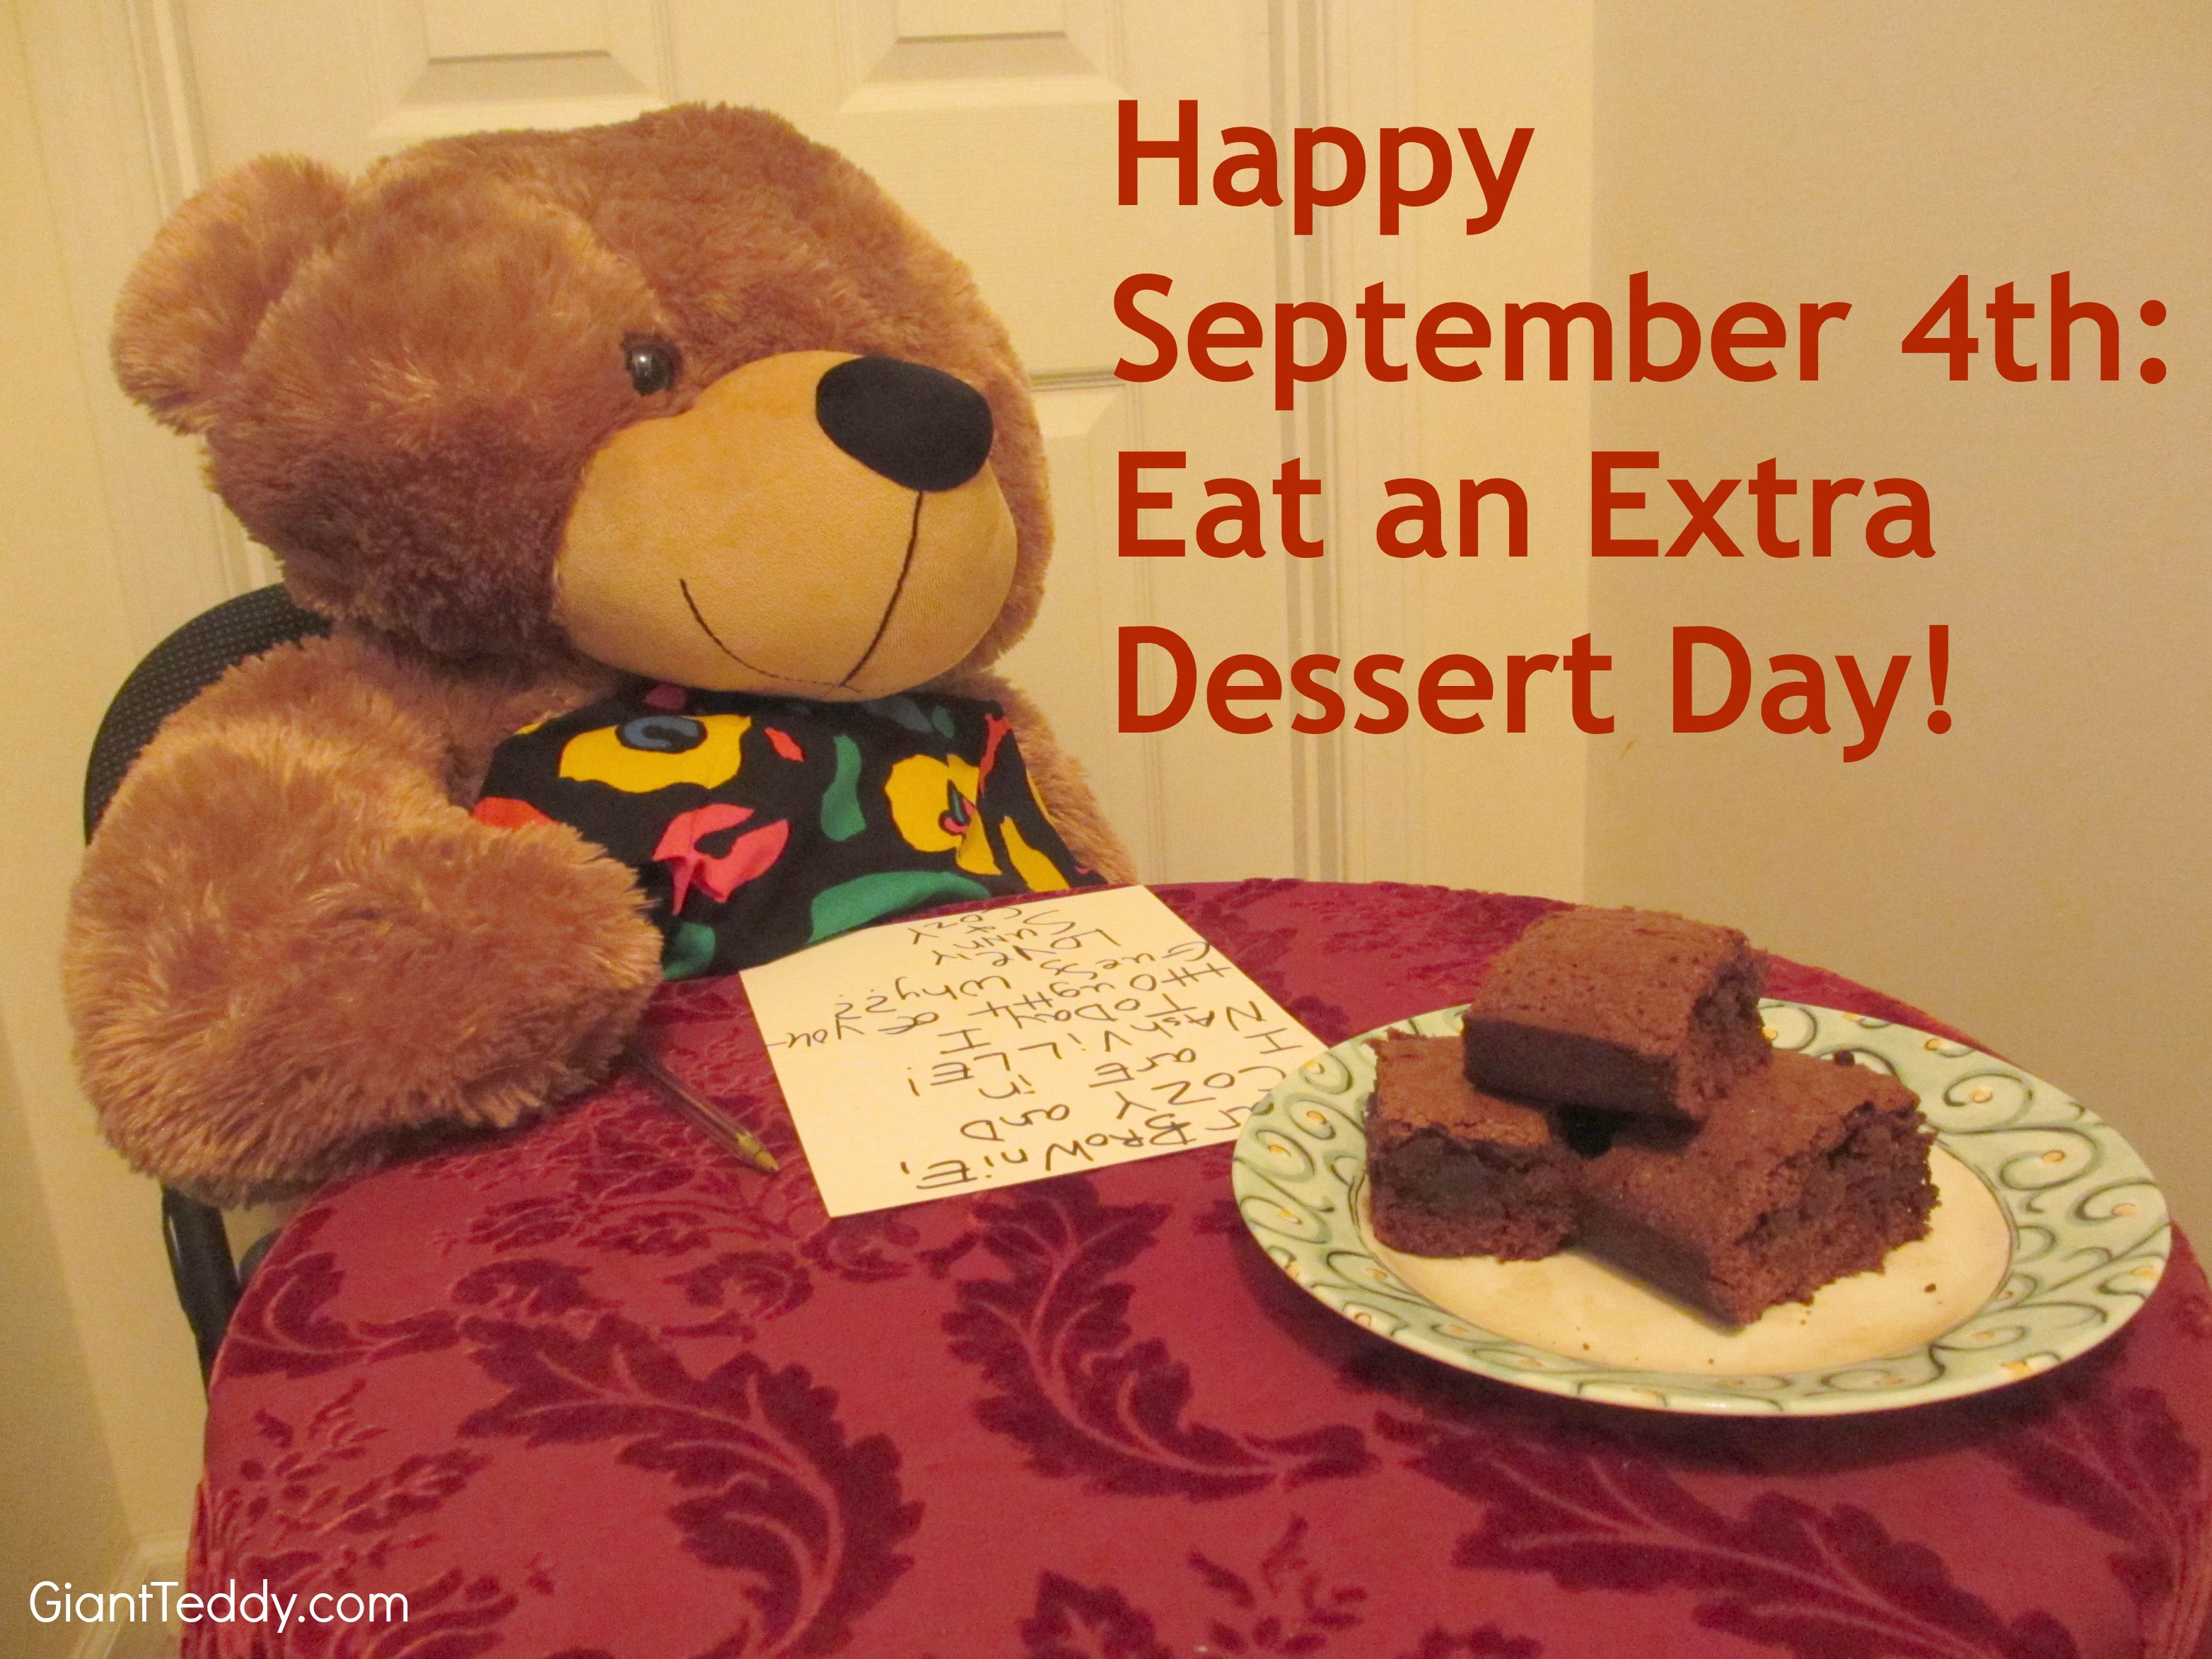 Eat an extra dessert day? A holiday we can all enjoy! Sunny Cuddles certainly is. giantteddy.com